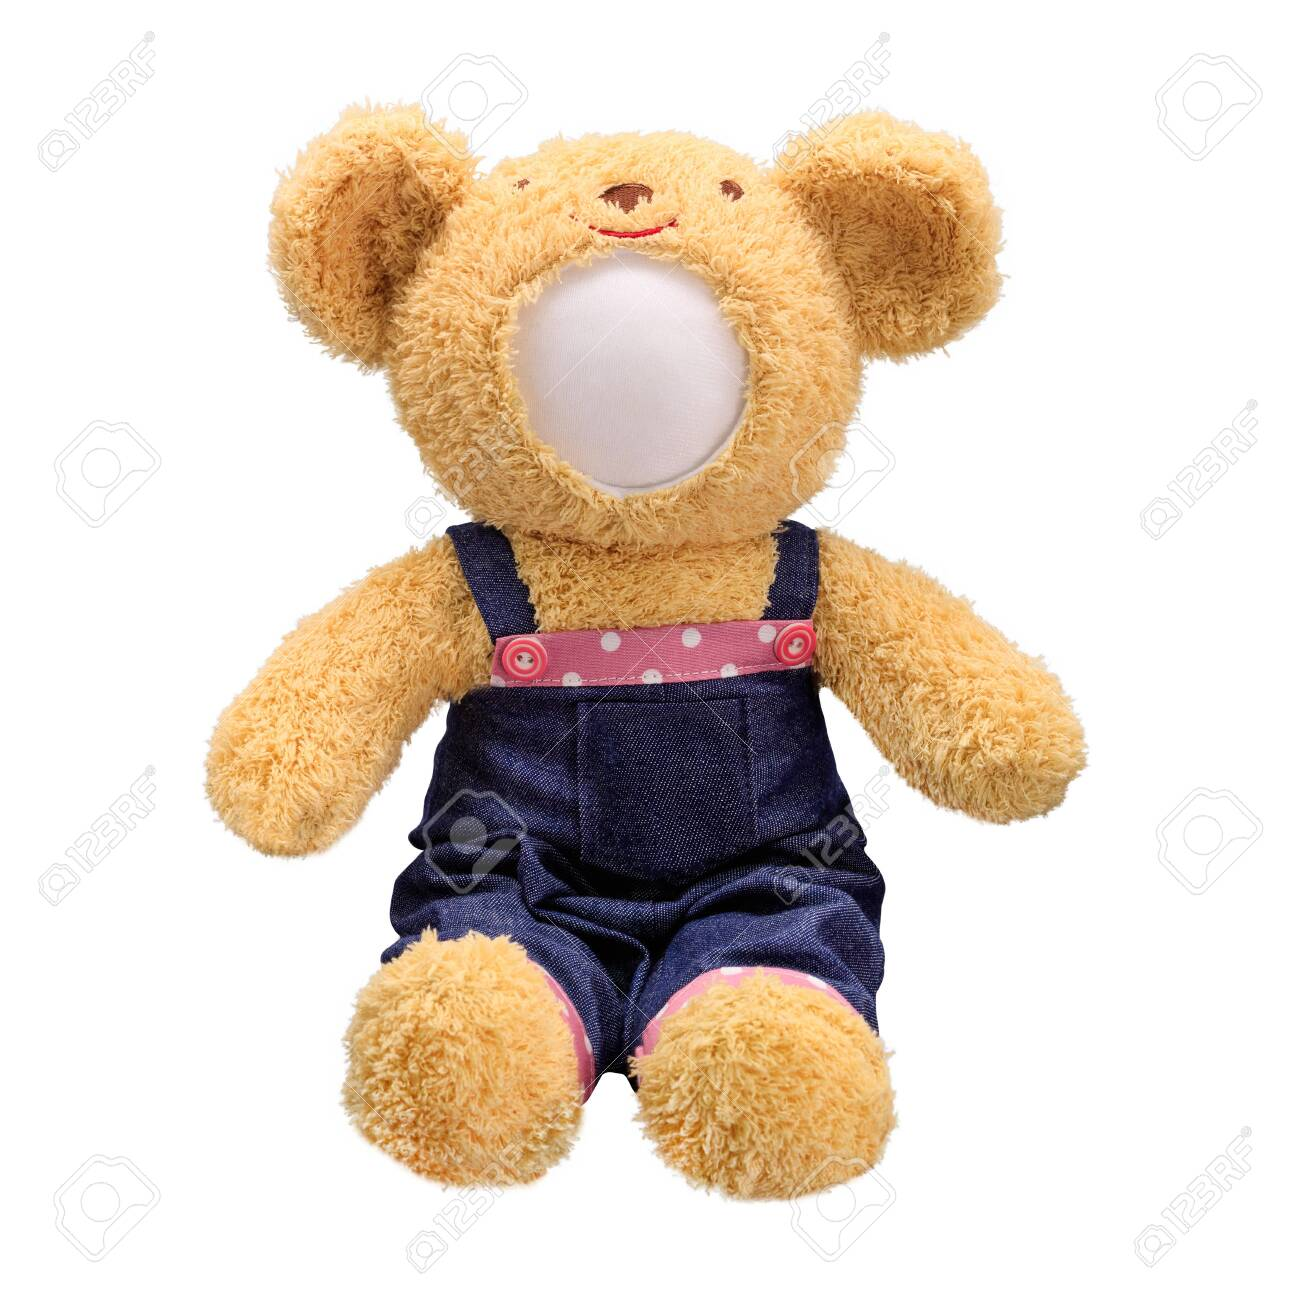 Teddy bears doll isolated on white background. Bear's doll in blue jeans uniform. Blank face toy for design. - 120142842